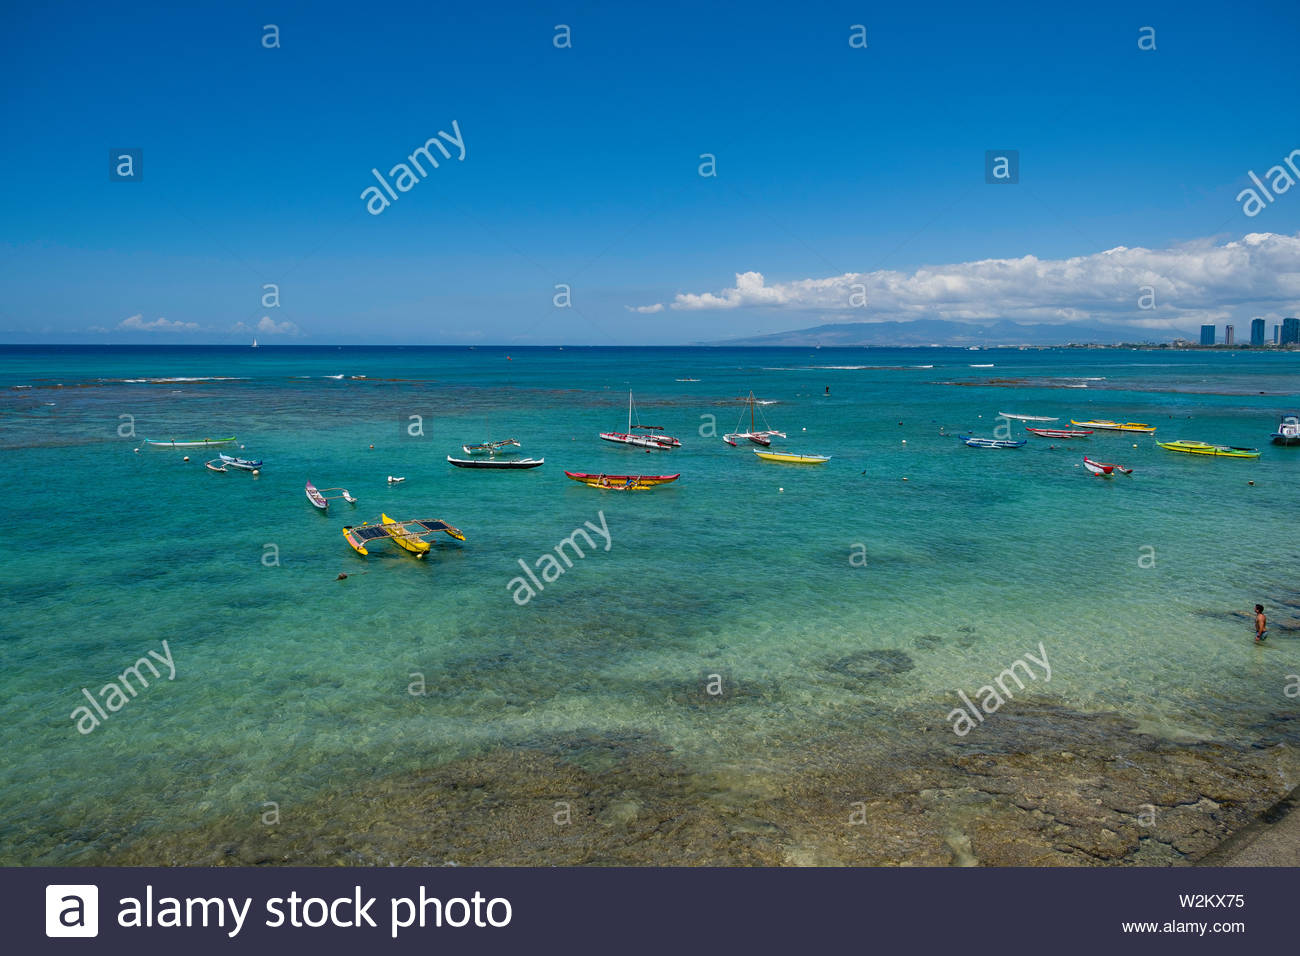 Outrigger canoes anchored offshore, Honolulu, Oahu, Hawaii, USA - Stock Image